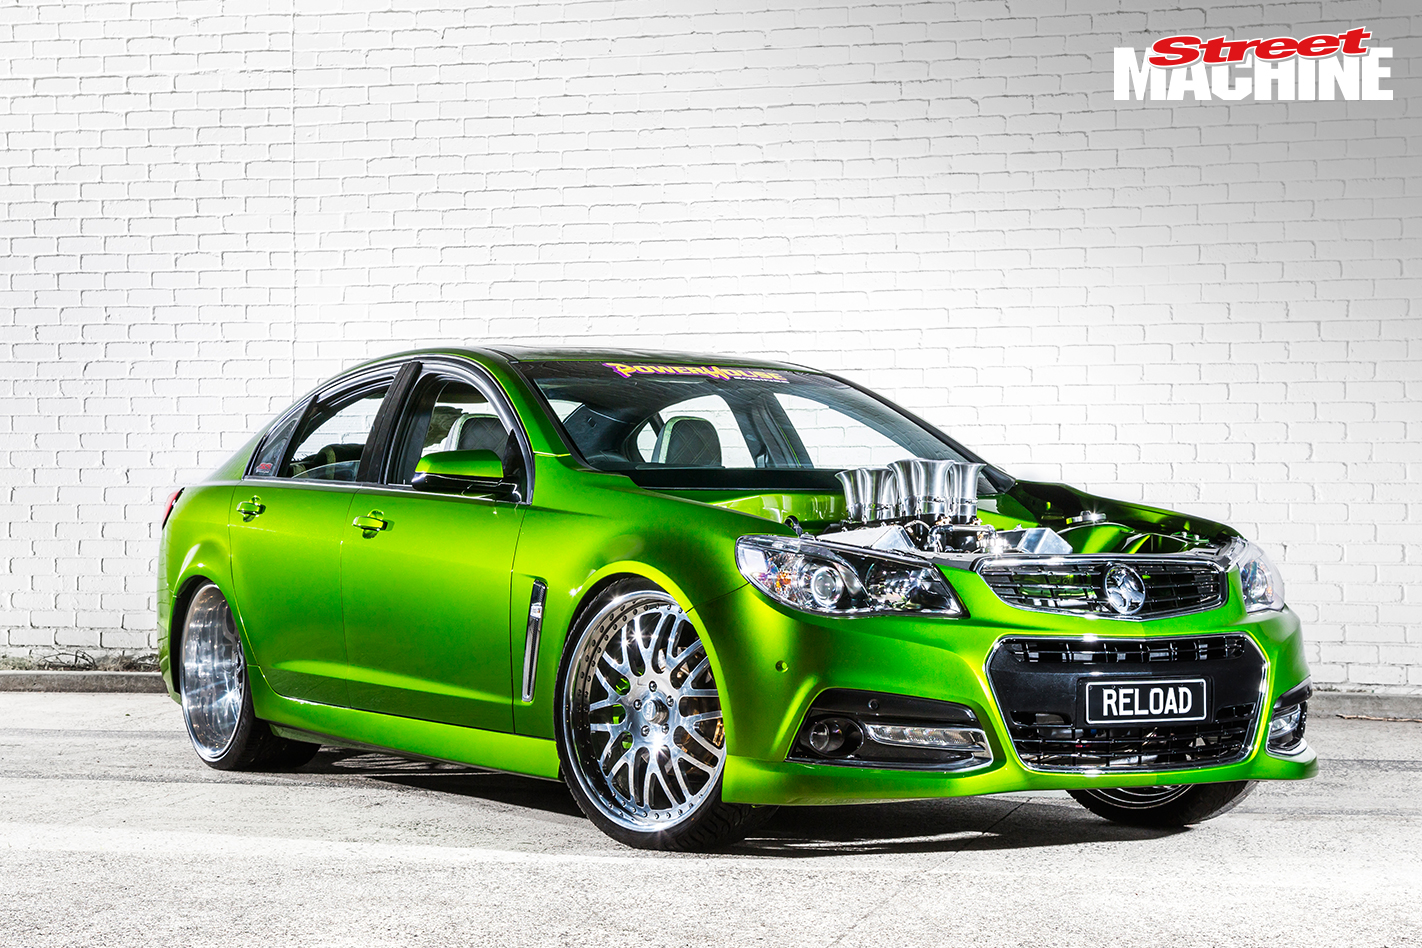 532 Cube Holden Vf Commodore Reload Street Machine